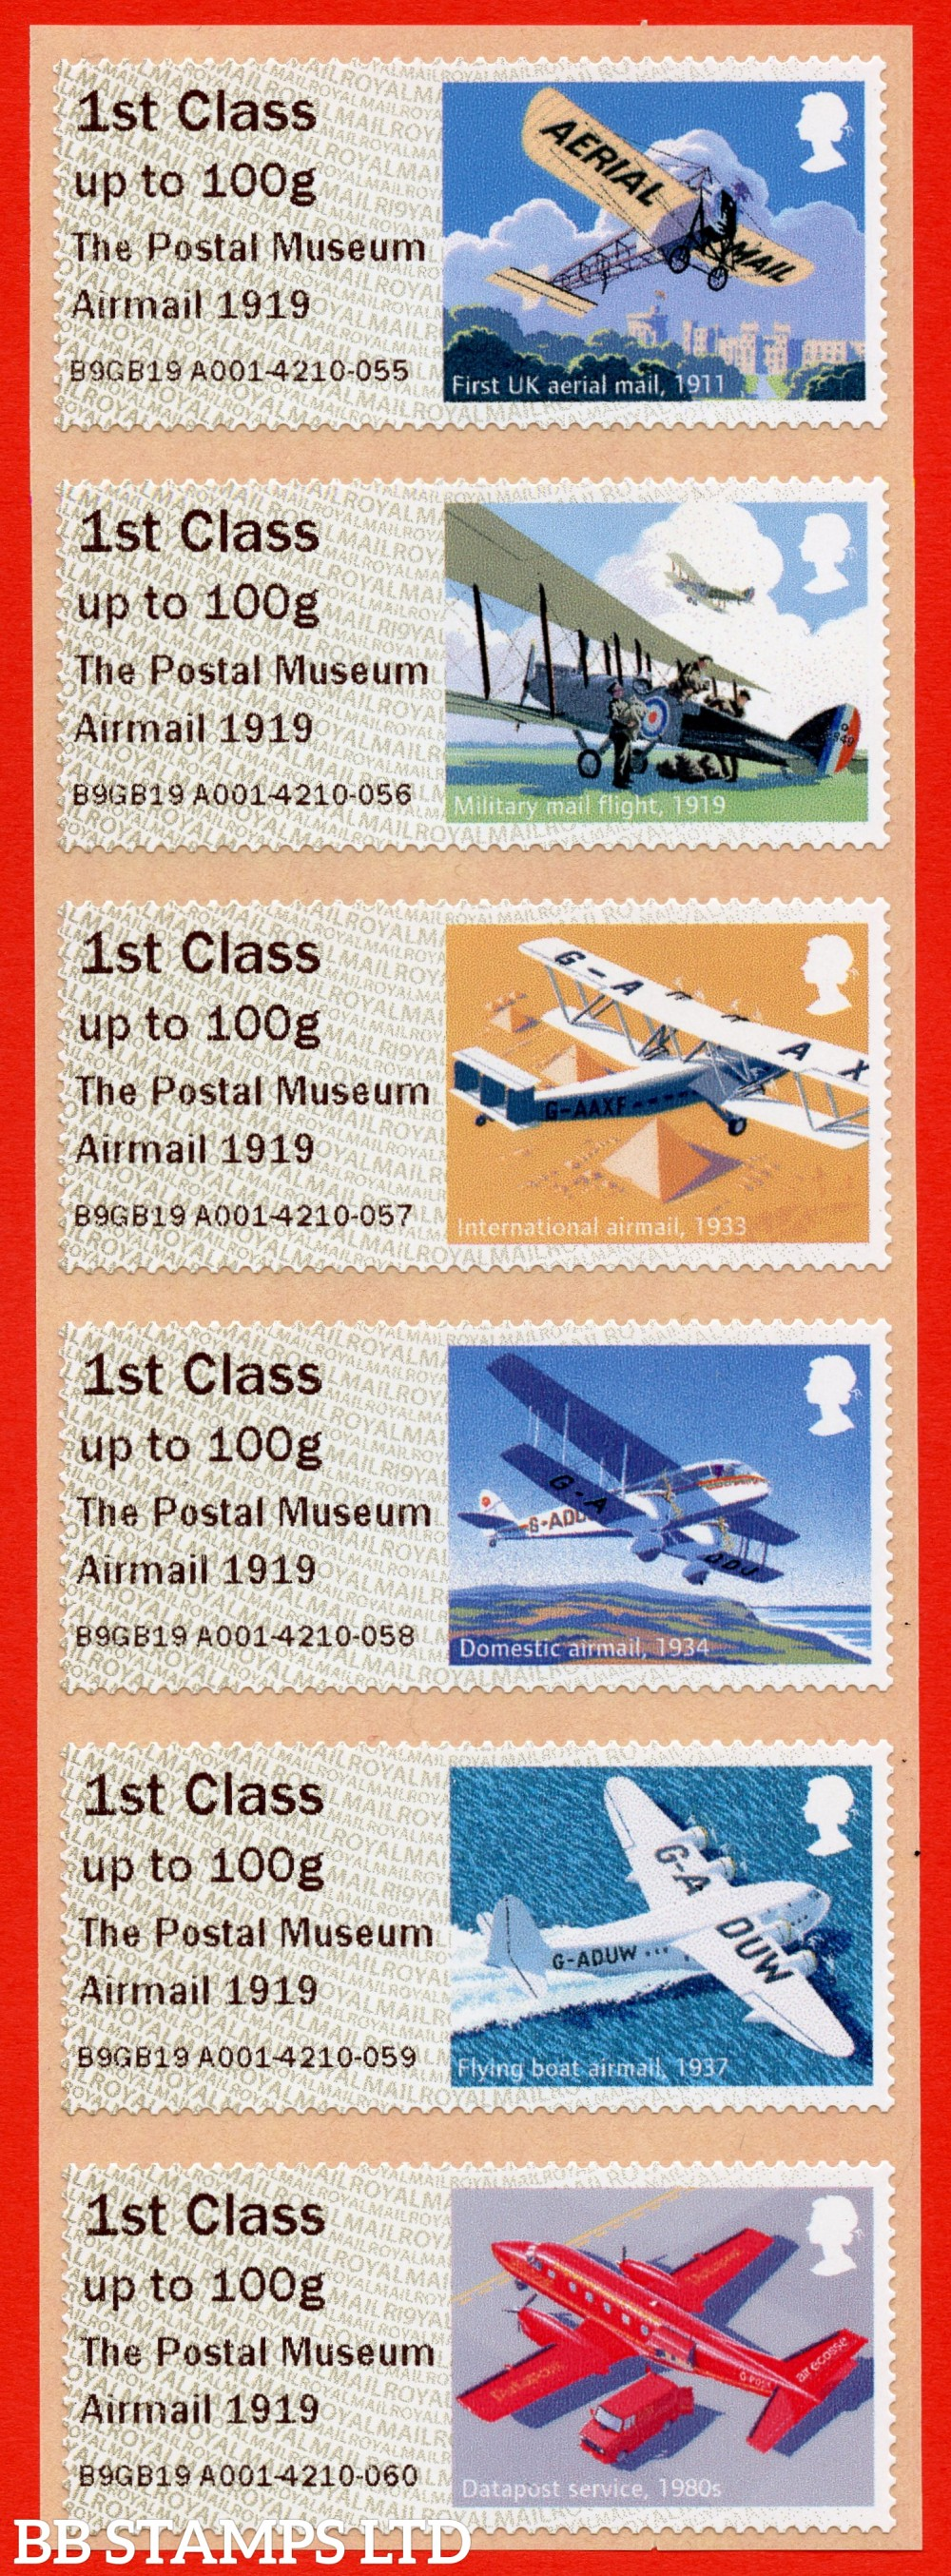 Mail By Air: The Postal Museum Airmail 1919, R19Y (Digital print): Type IIIA 6 x 1st Class (BK28,P18)